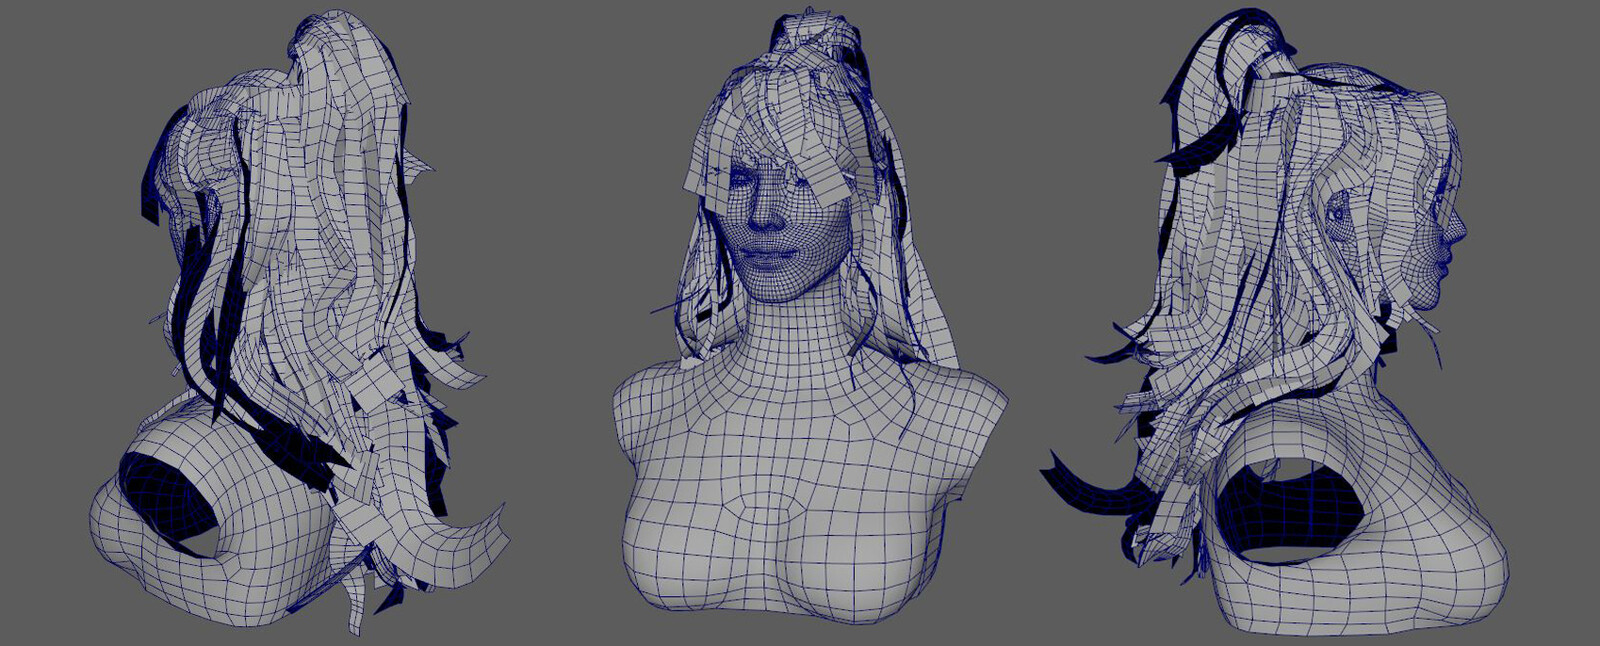 Low poly with wireframe, hair assets tricount is 22k.